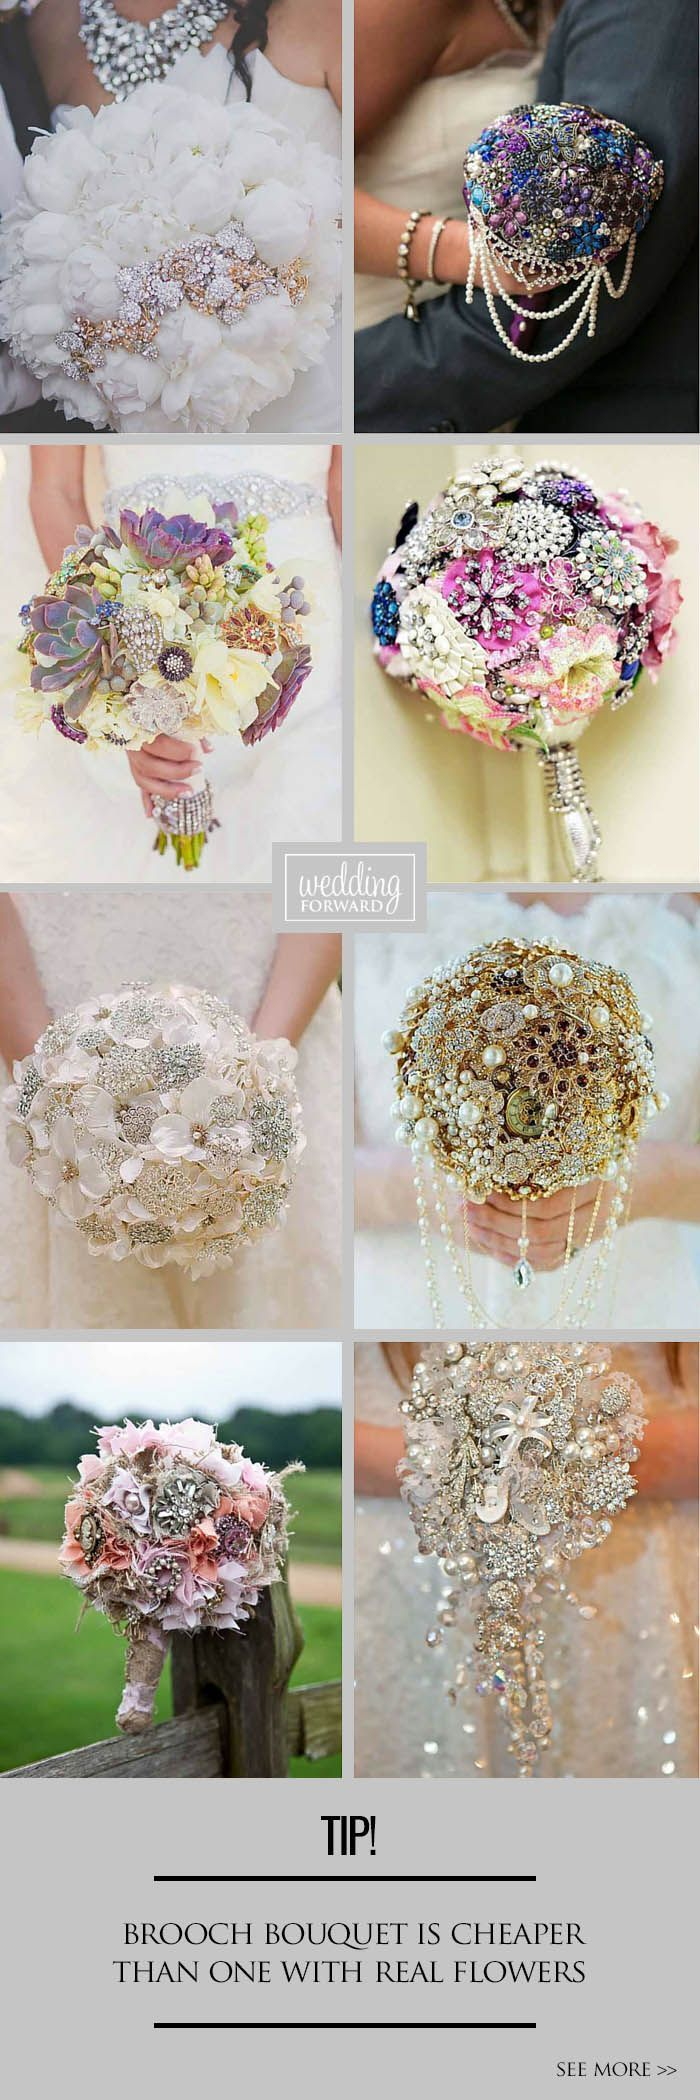 24 Chic Brooch Wedding Bouquets With Bling ❤️ They will stay in great condition for years unlike fresh flowers and be a reminder about this day. See more: http://www.weddingforward.com/brooch-wedding-bouquets/ #weddings #bouquets